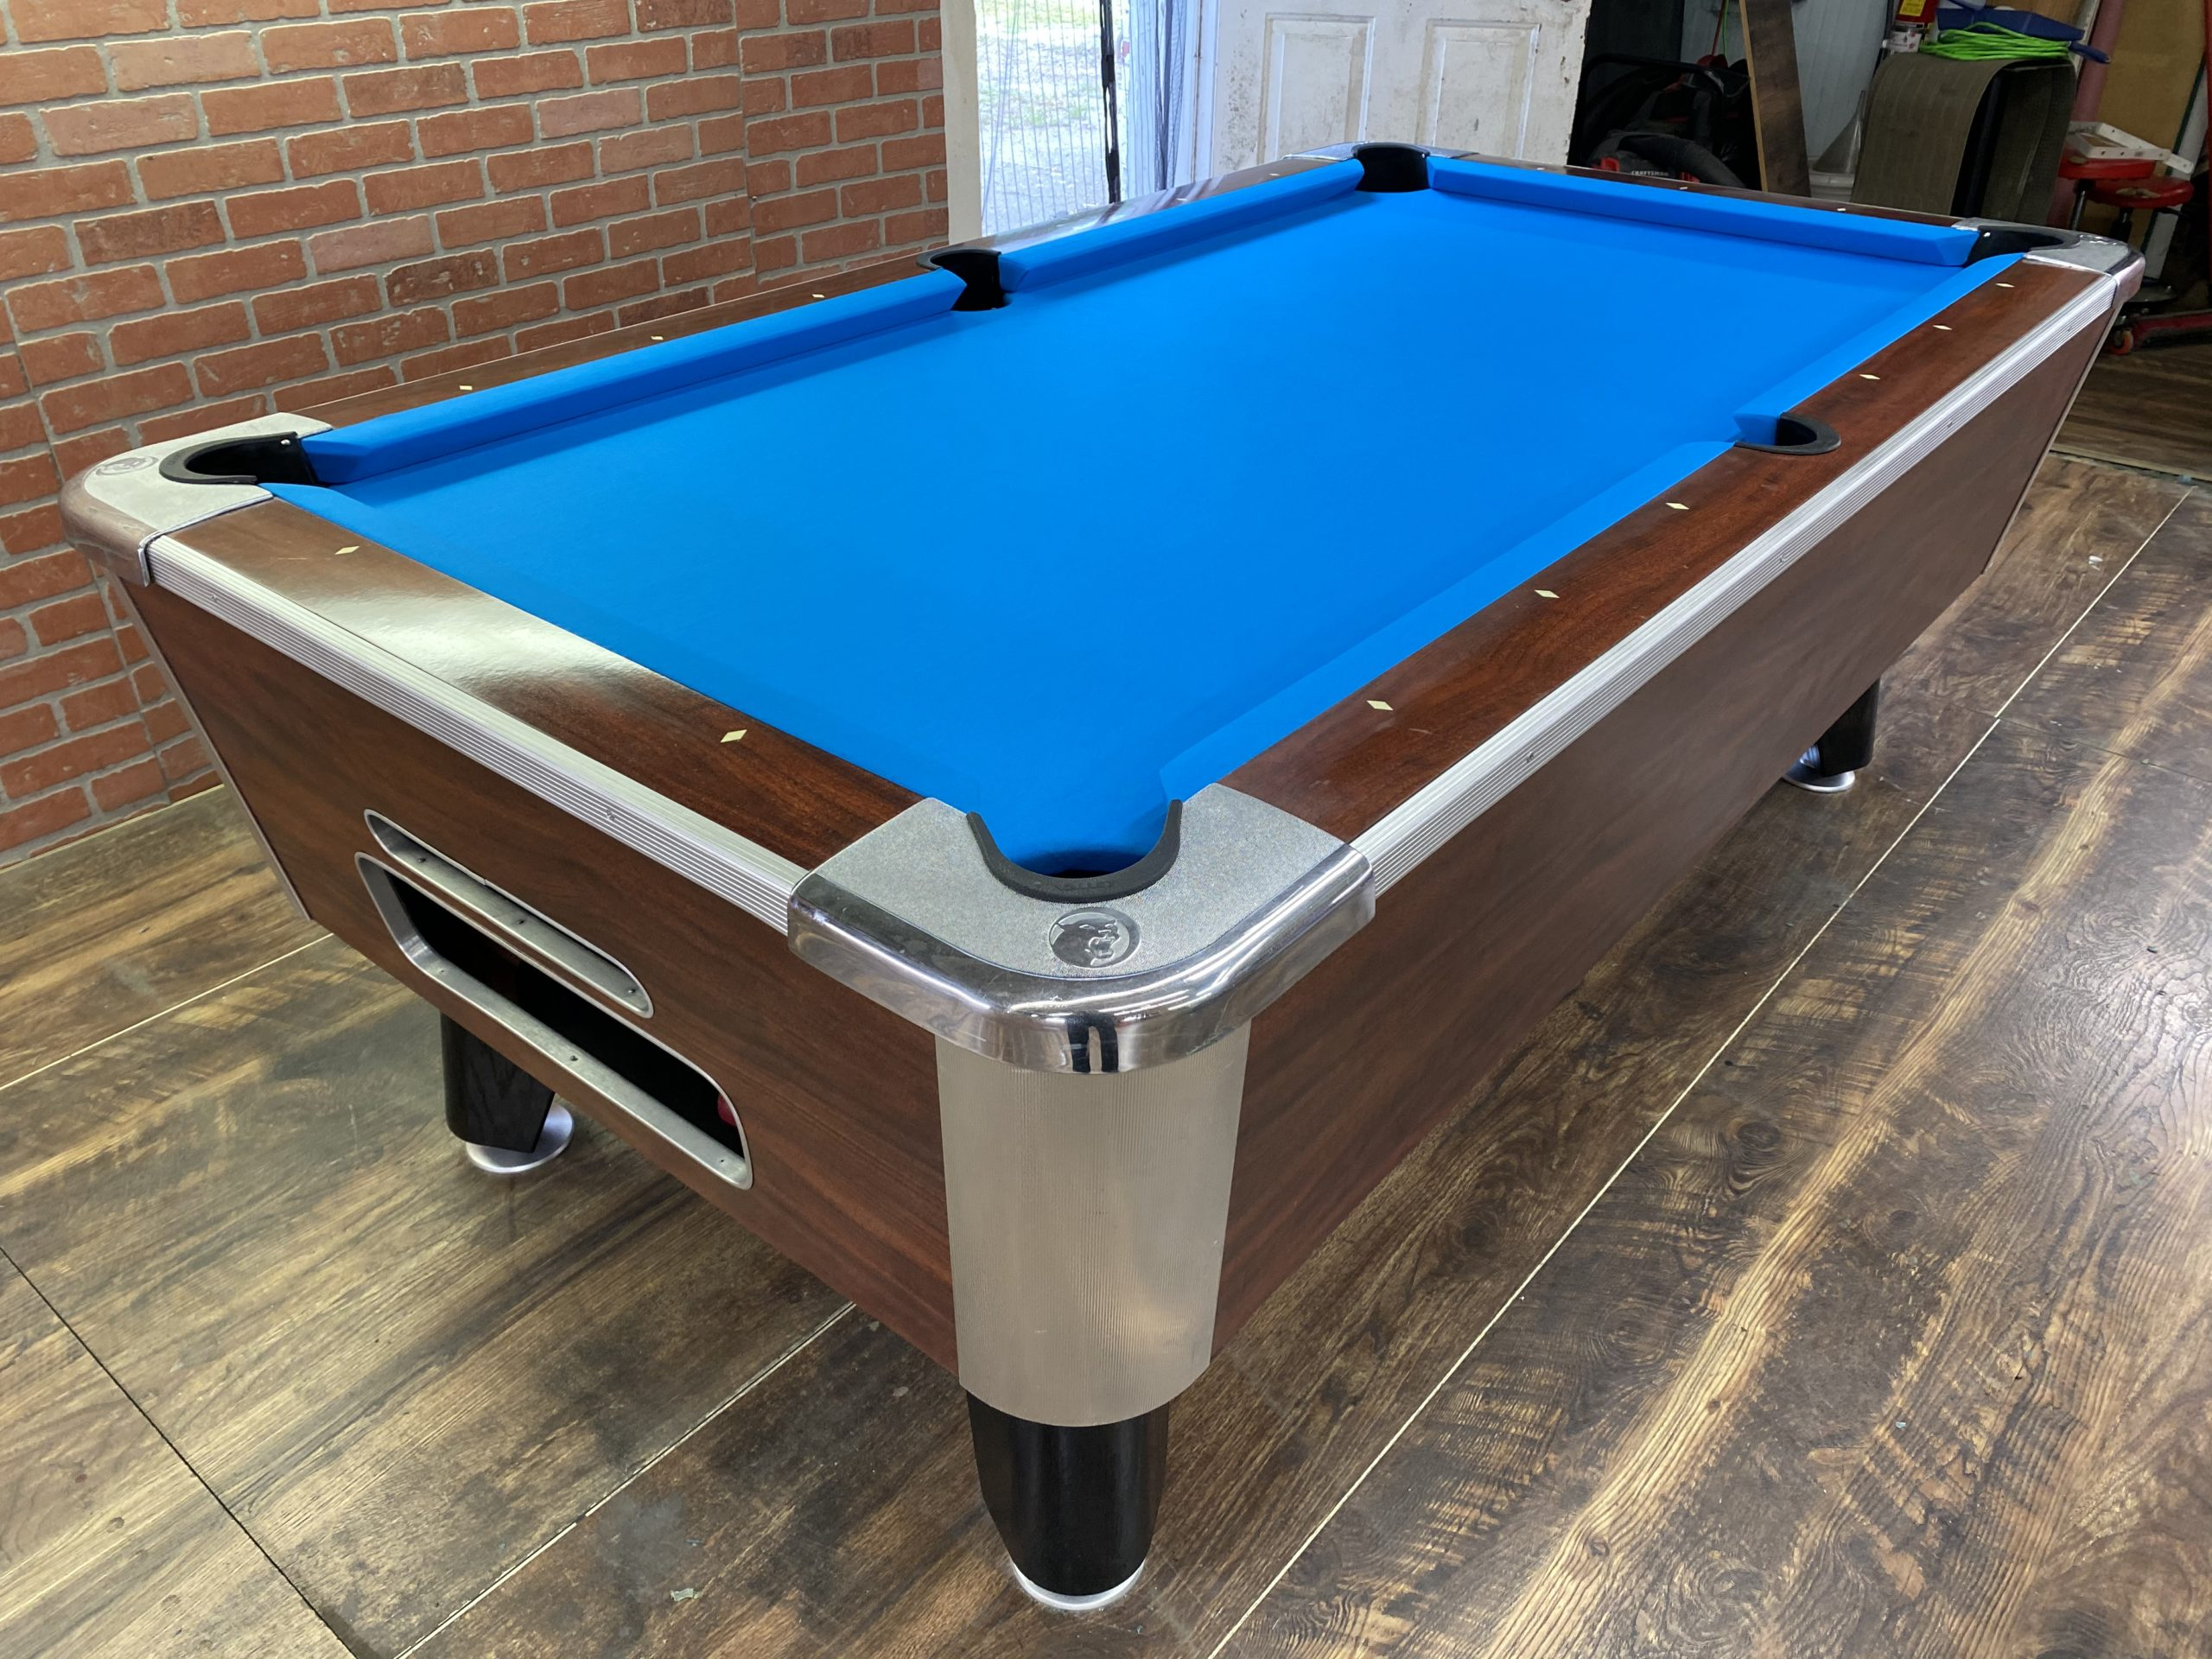 6 1/2 Valley Used Coin Operated Pool Table   Used Coin ...